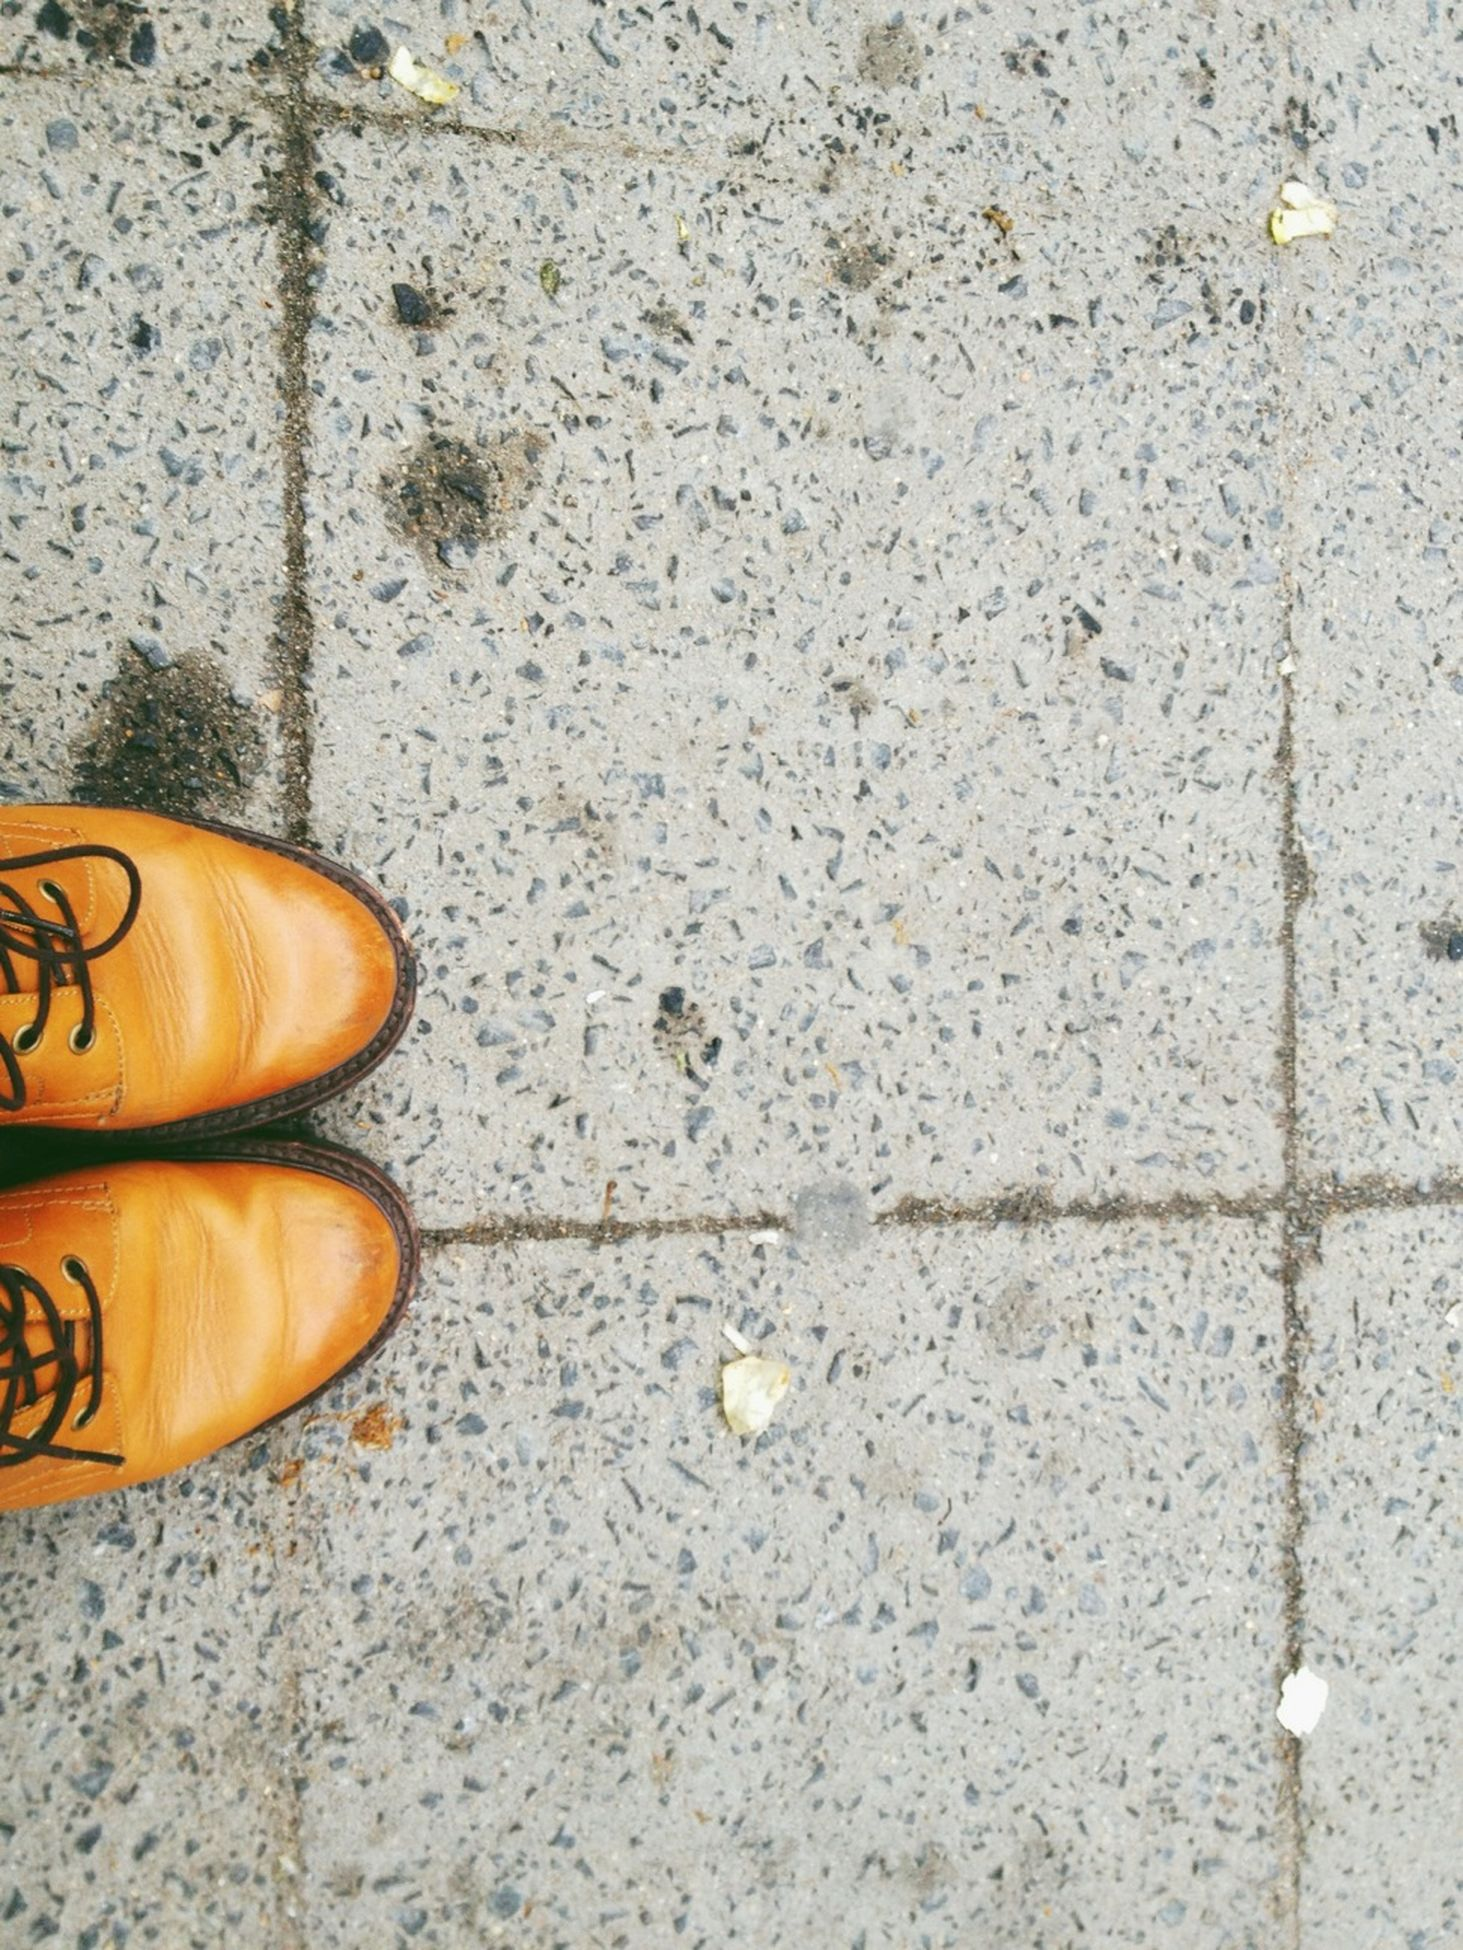 shoe, low section, footwear, person, high angle view, street, one person, pair, cobblestone, personal perspective, human foot, close-up, sidewalk, part of, directly above, yellow, outdoors, paving stone, day